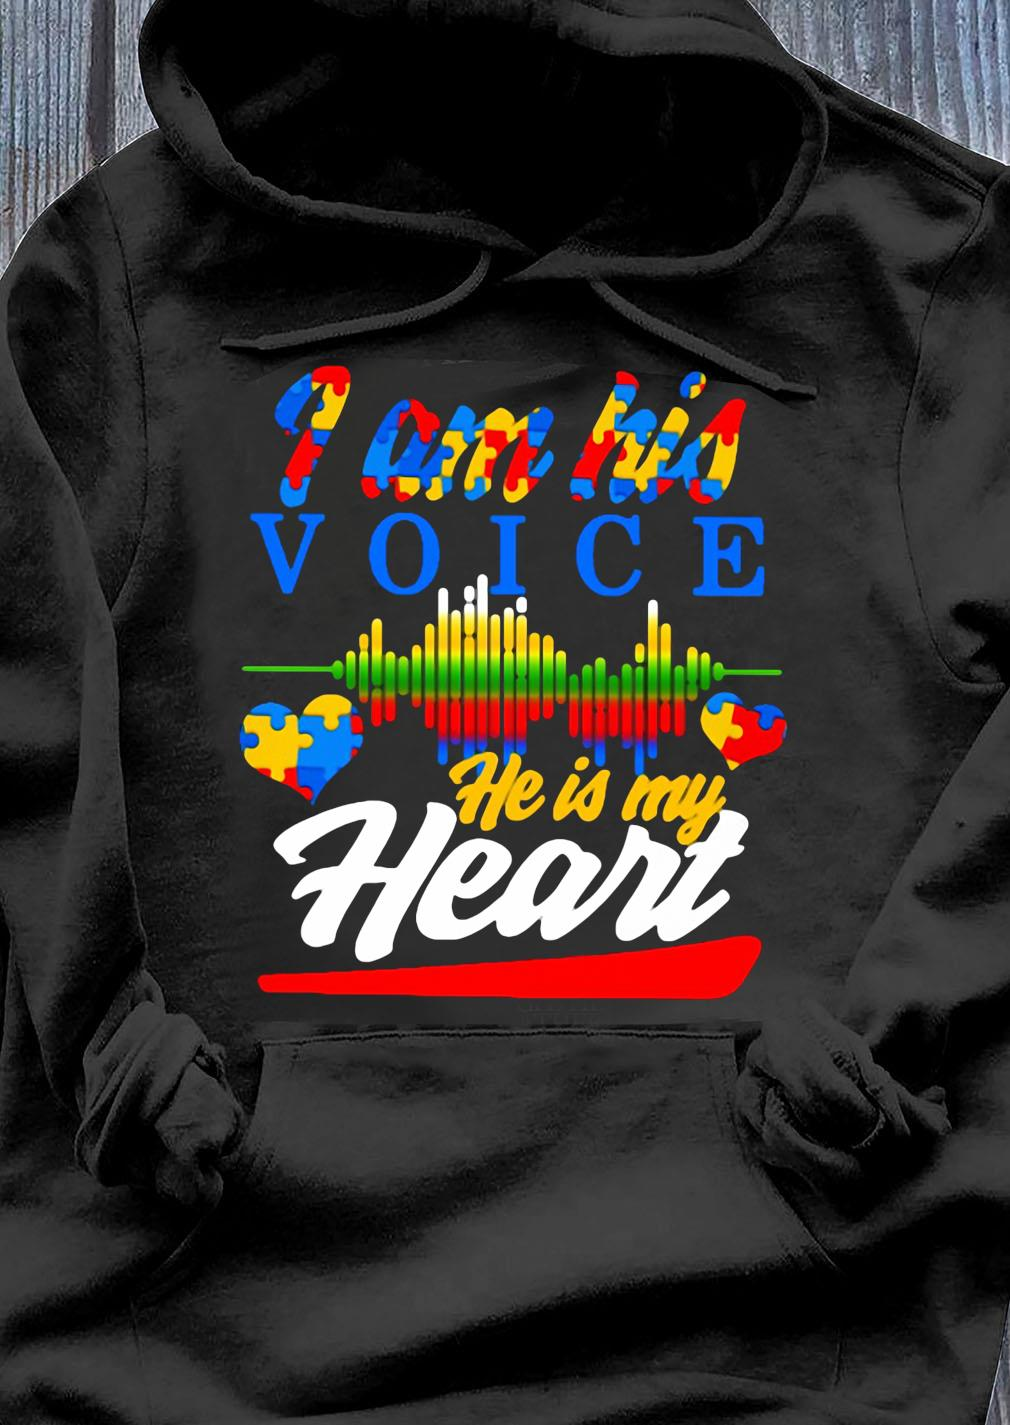 Autism Heart And Heartbeat Iam His Voice He Is My Heart Shirt Hoodie